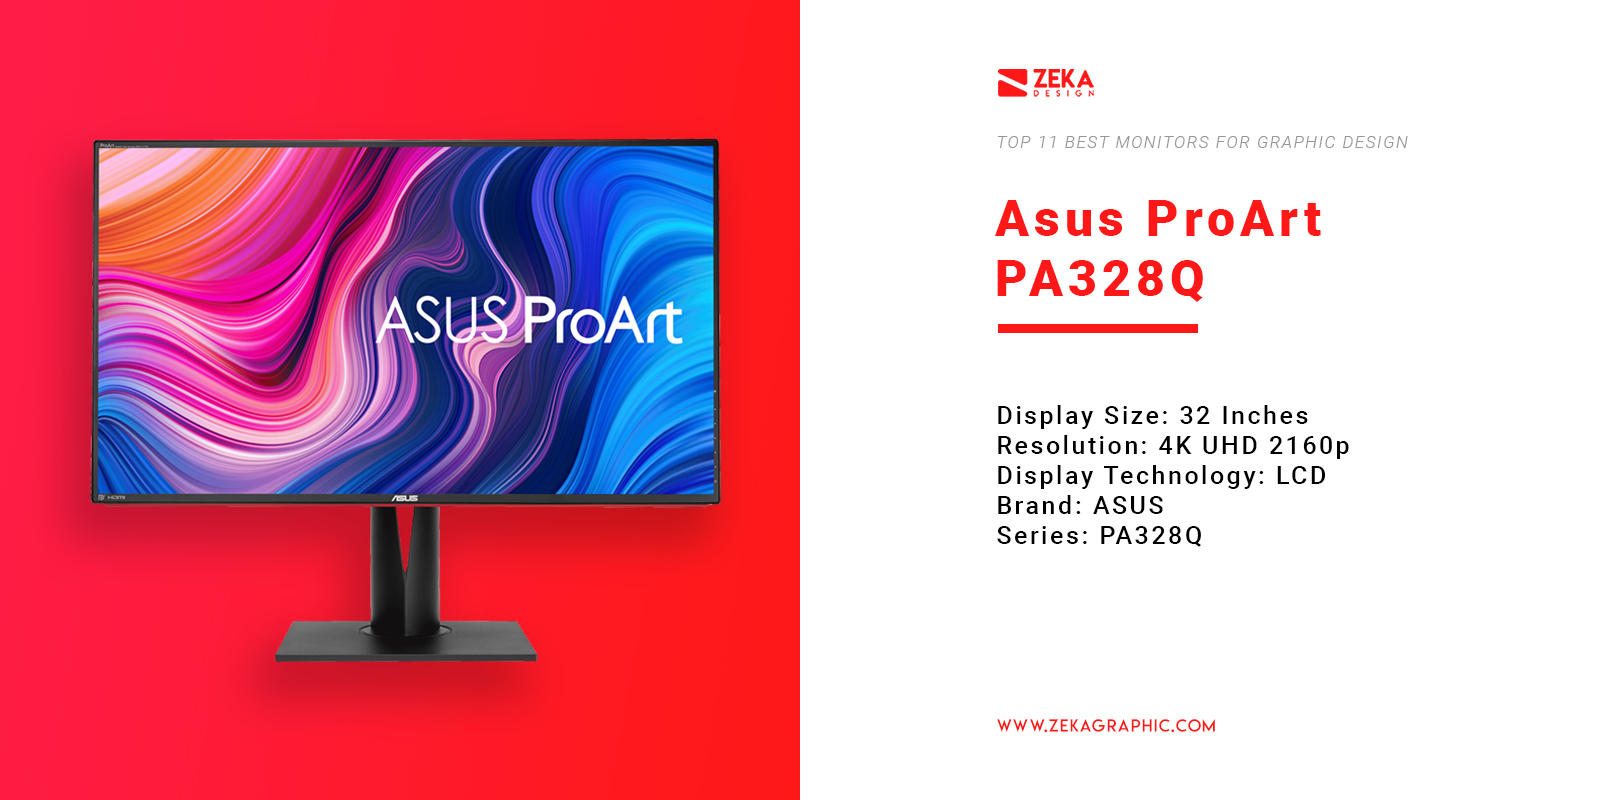 Asus ProArt PA328Q 4K Monitor for Graphic Design